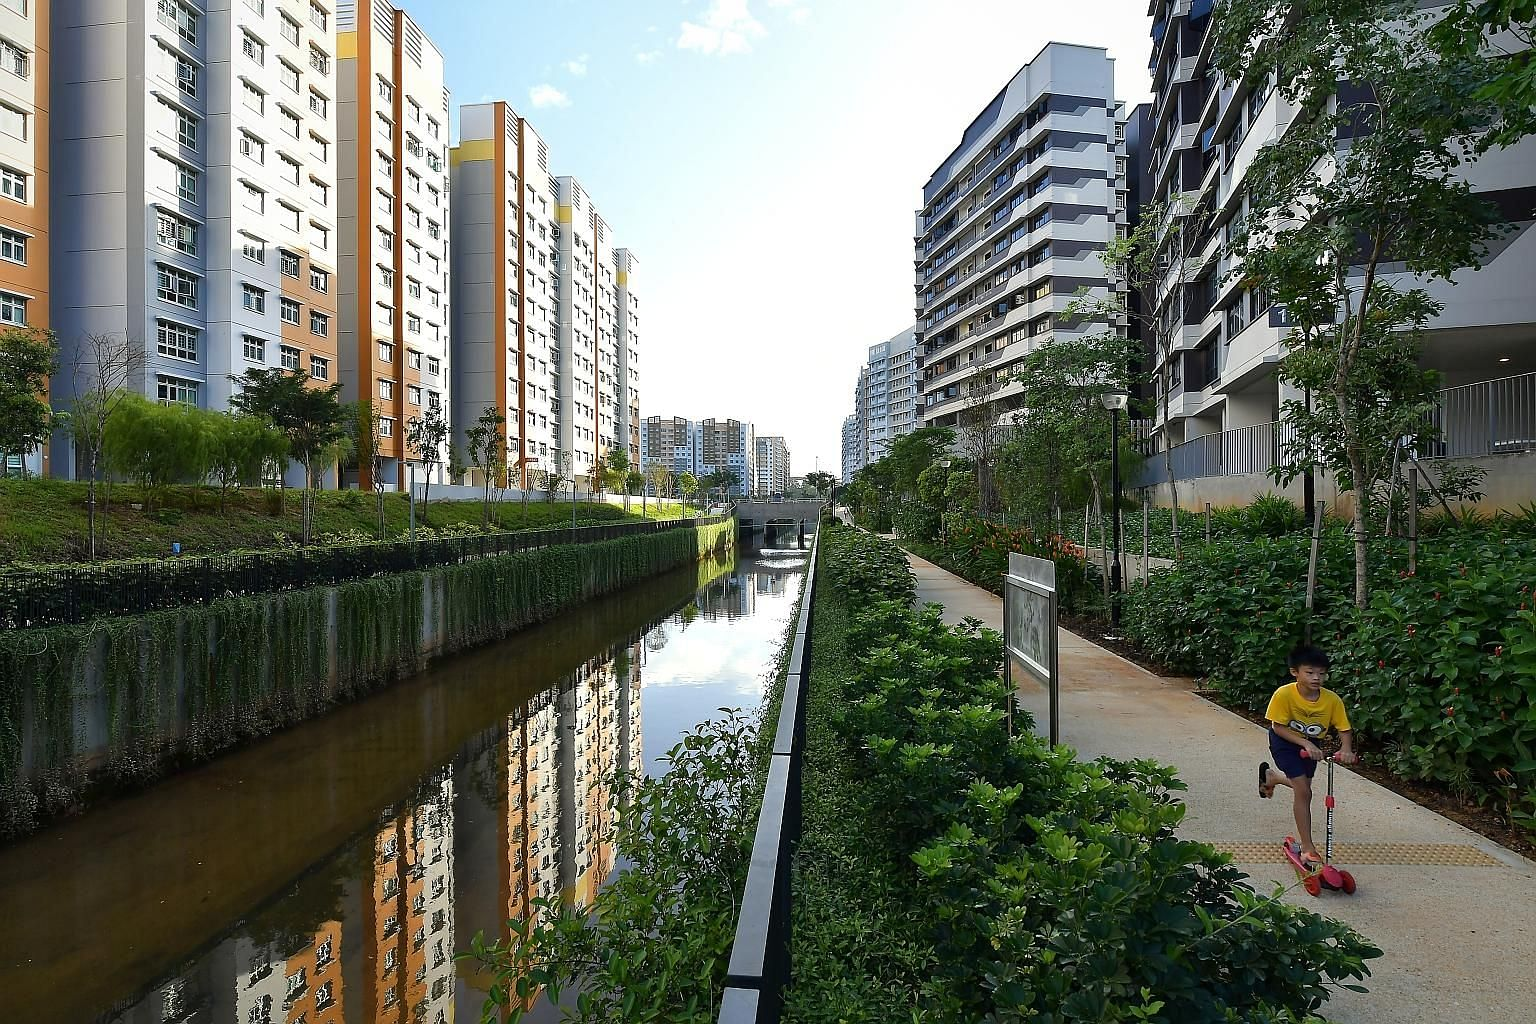 Rain gardens, new footpaths and a wide variety of flowers and plants now line the Sungei Simpang Kanan canal in Canberra, Sembawang, following a facelift. The improvement works by national water agency PUB was completed recently and unveiled yesterda